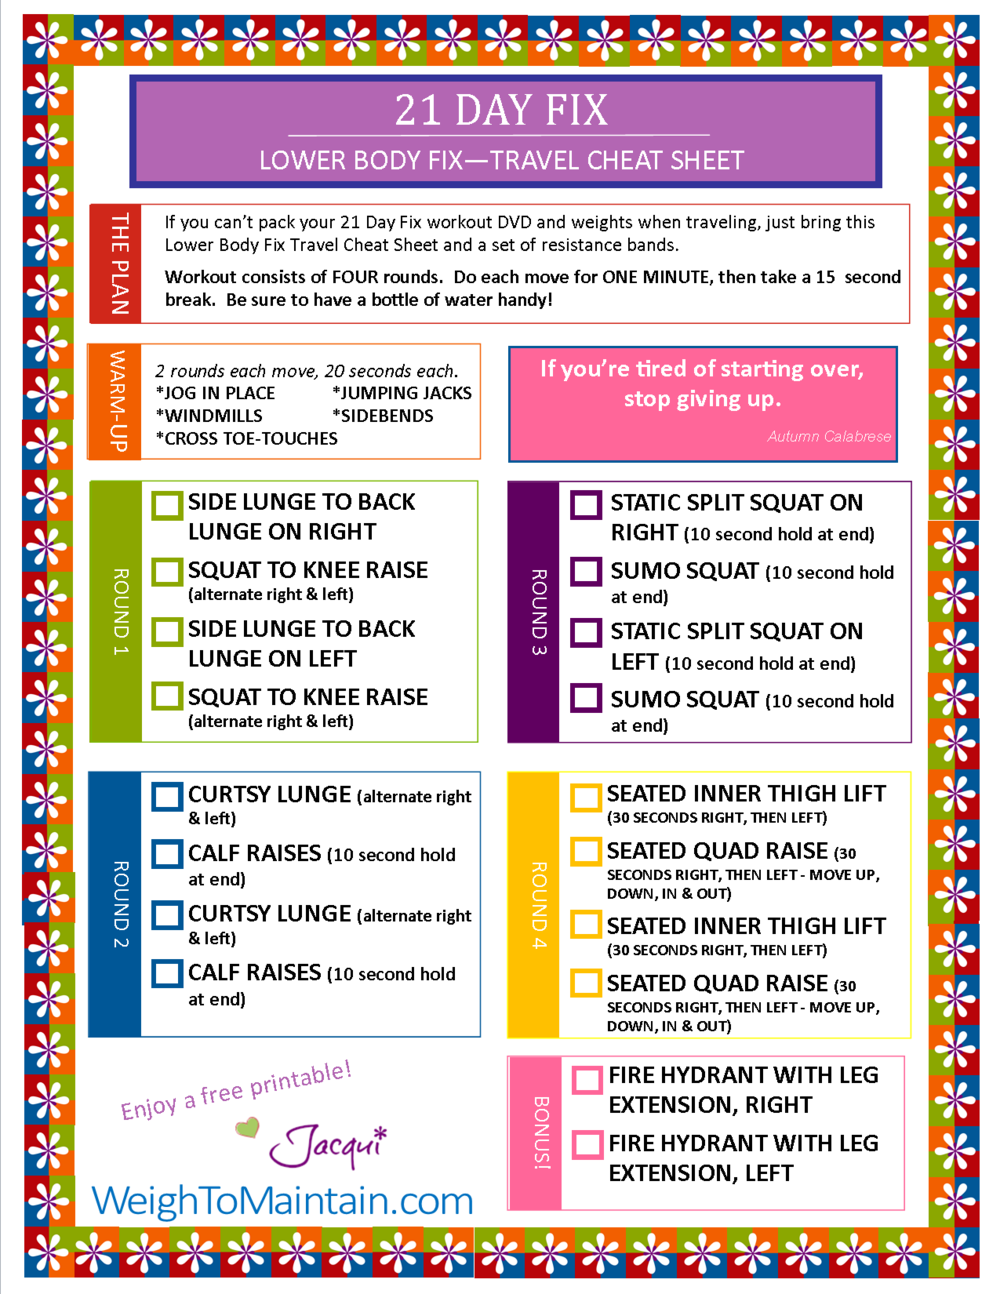 21-Day-Fix-Lower-Body-Fix-Printable.png